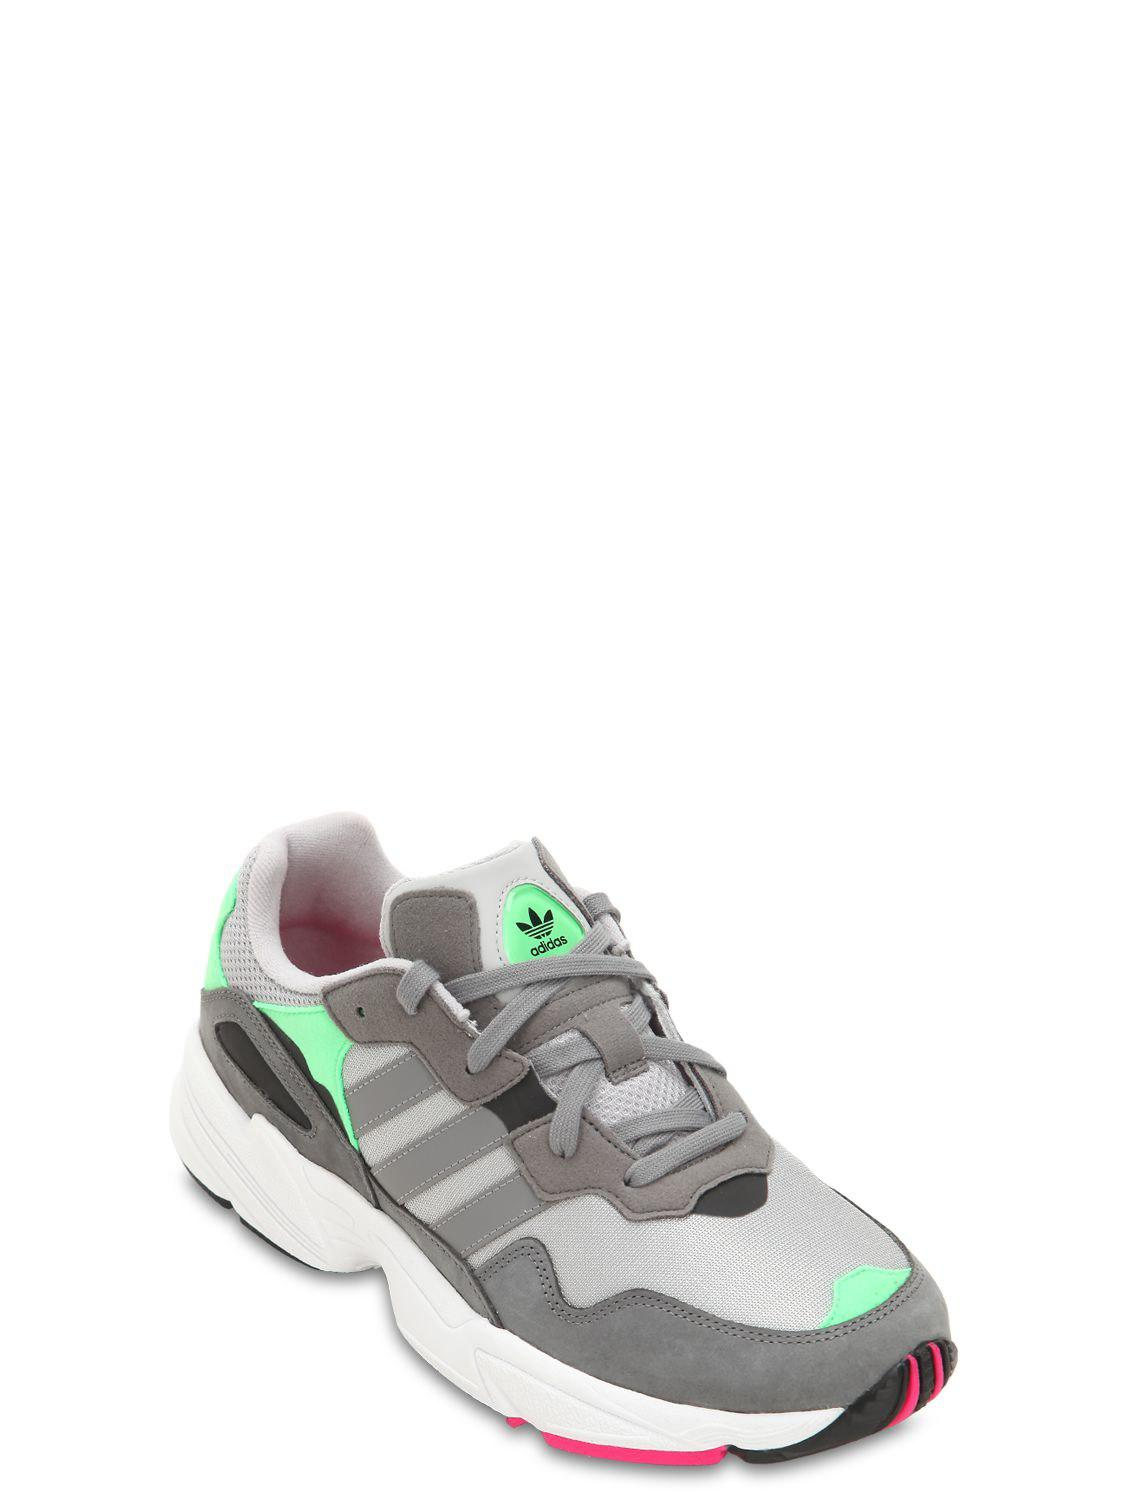 the latest 09756 20814 adidas Originals Yung-96 Leather   Mesh Sneakers in Gray for Men - Lyst